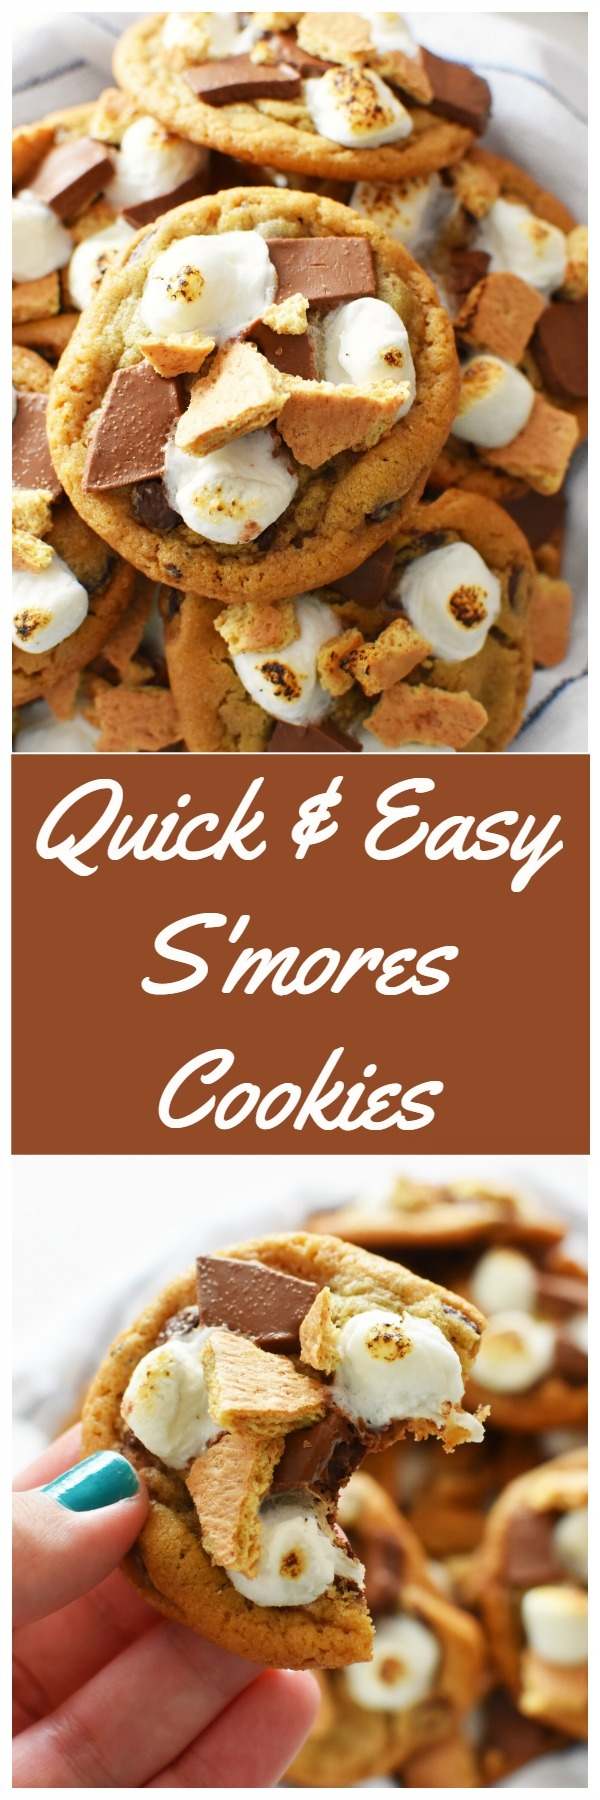 S\'mores Cookies Recipe {Quick & Easy}